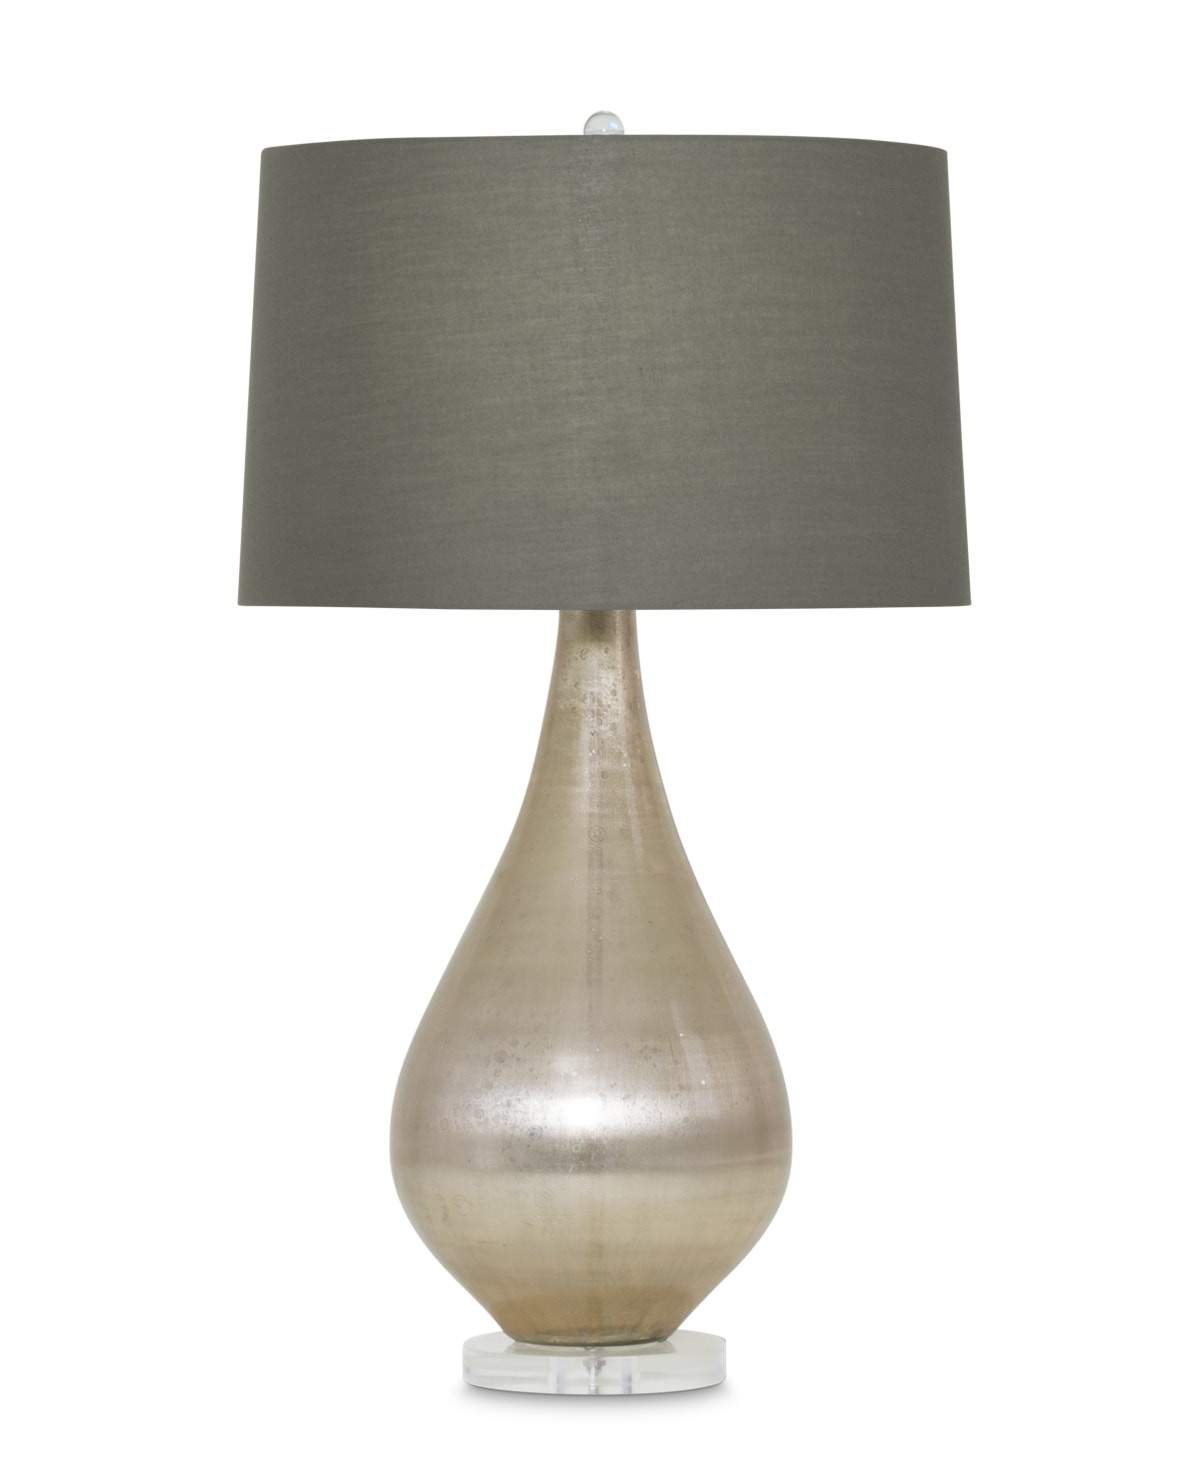 FlowDecor Holland Table Lamp in mouth-blown glass with beige metallic finish and acrylic base and taupe cotton tapered drum shade (# 3905)